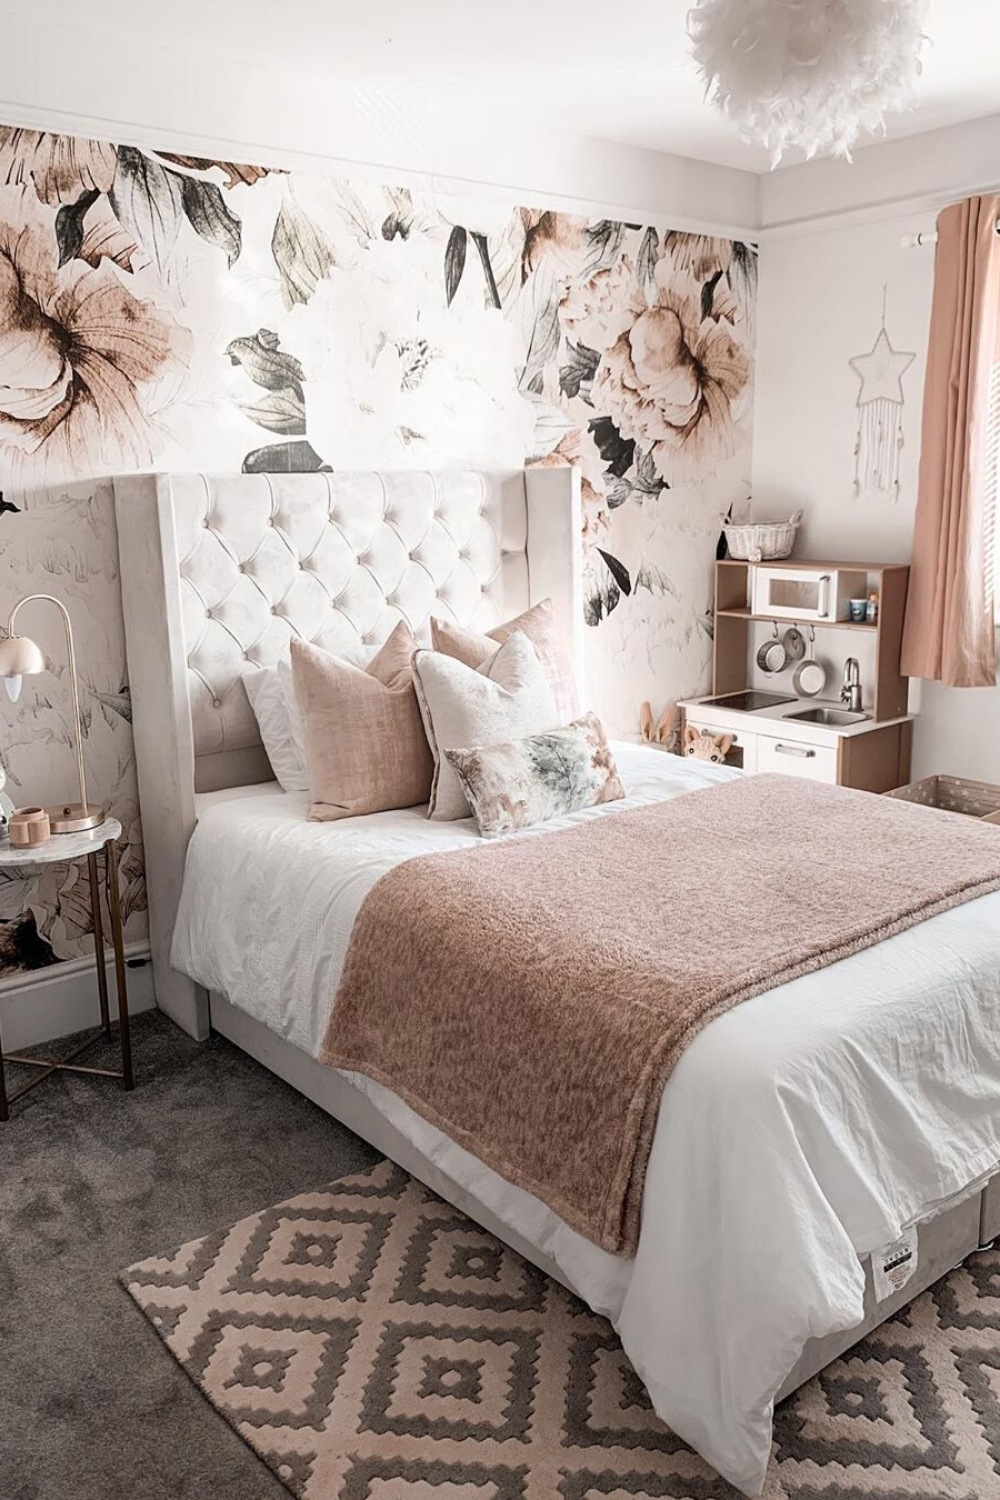 30 Absolutely Gorgeous Bedroom Ideas Small Bedroom With Wallpaper Stylish Bedroom Design Pink Wallpaper Bedroom